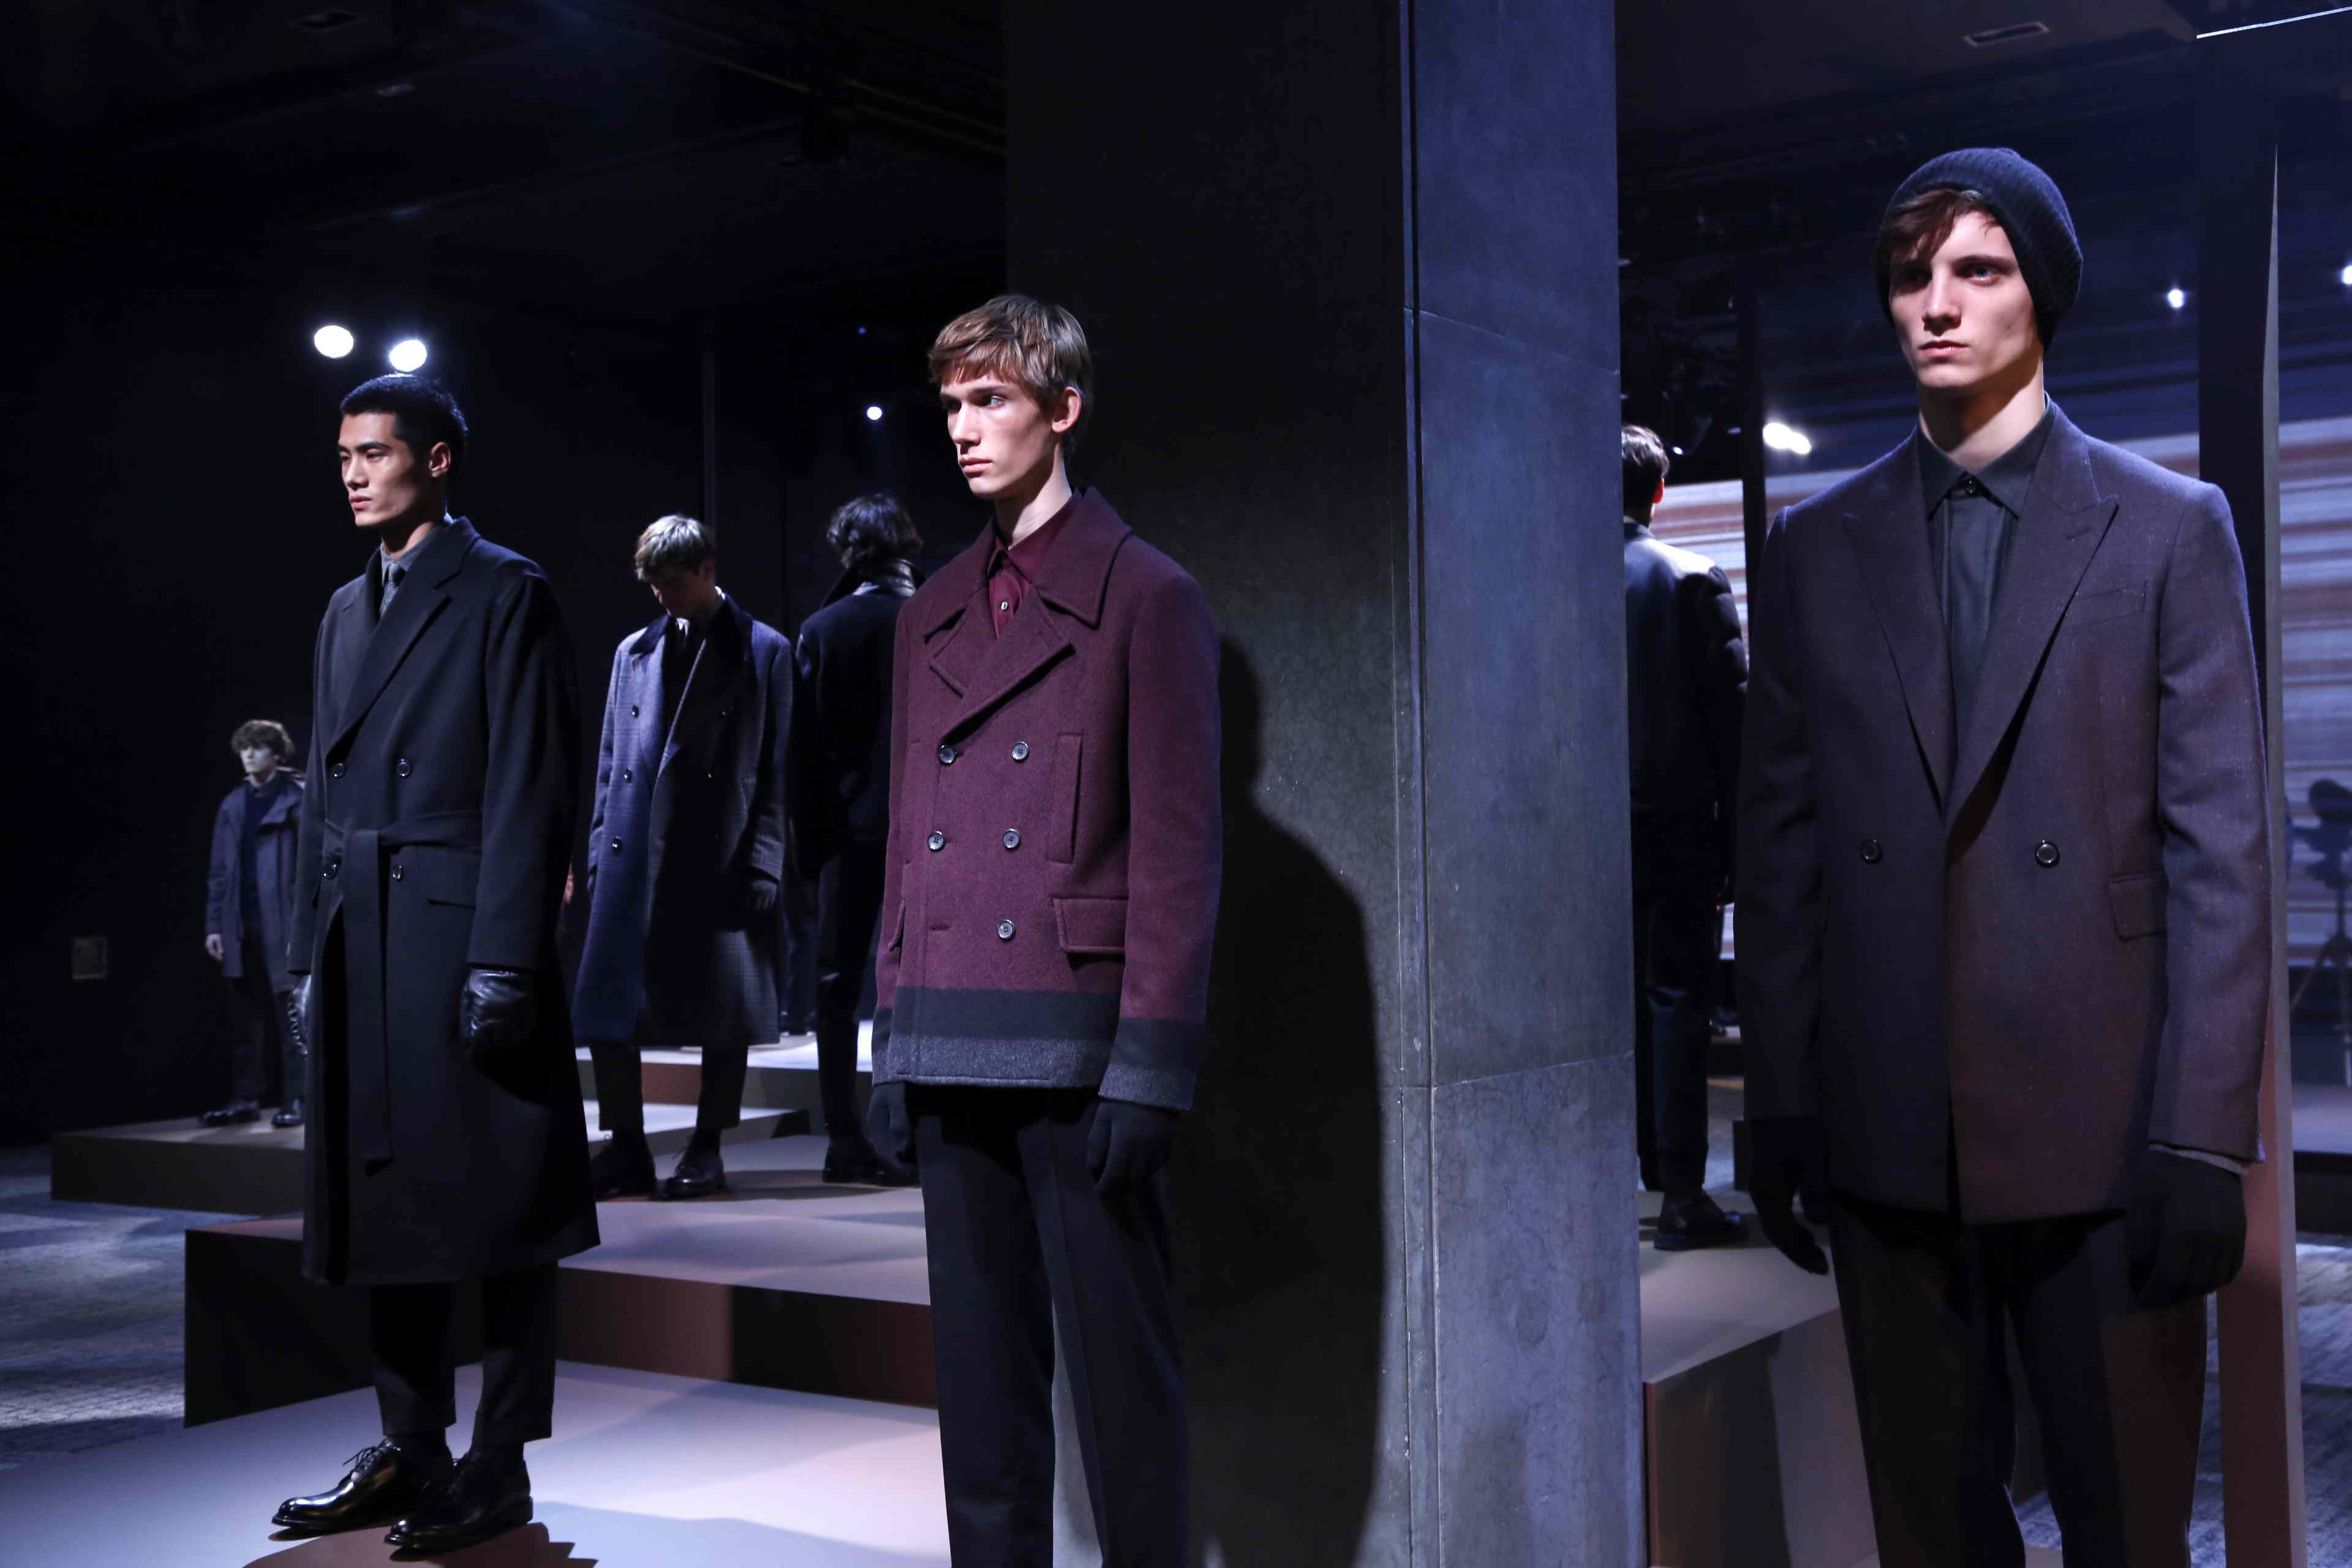 Cerruti 1881's autumn/winter 2016 presentation in Paris